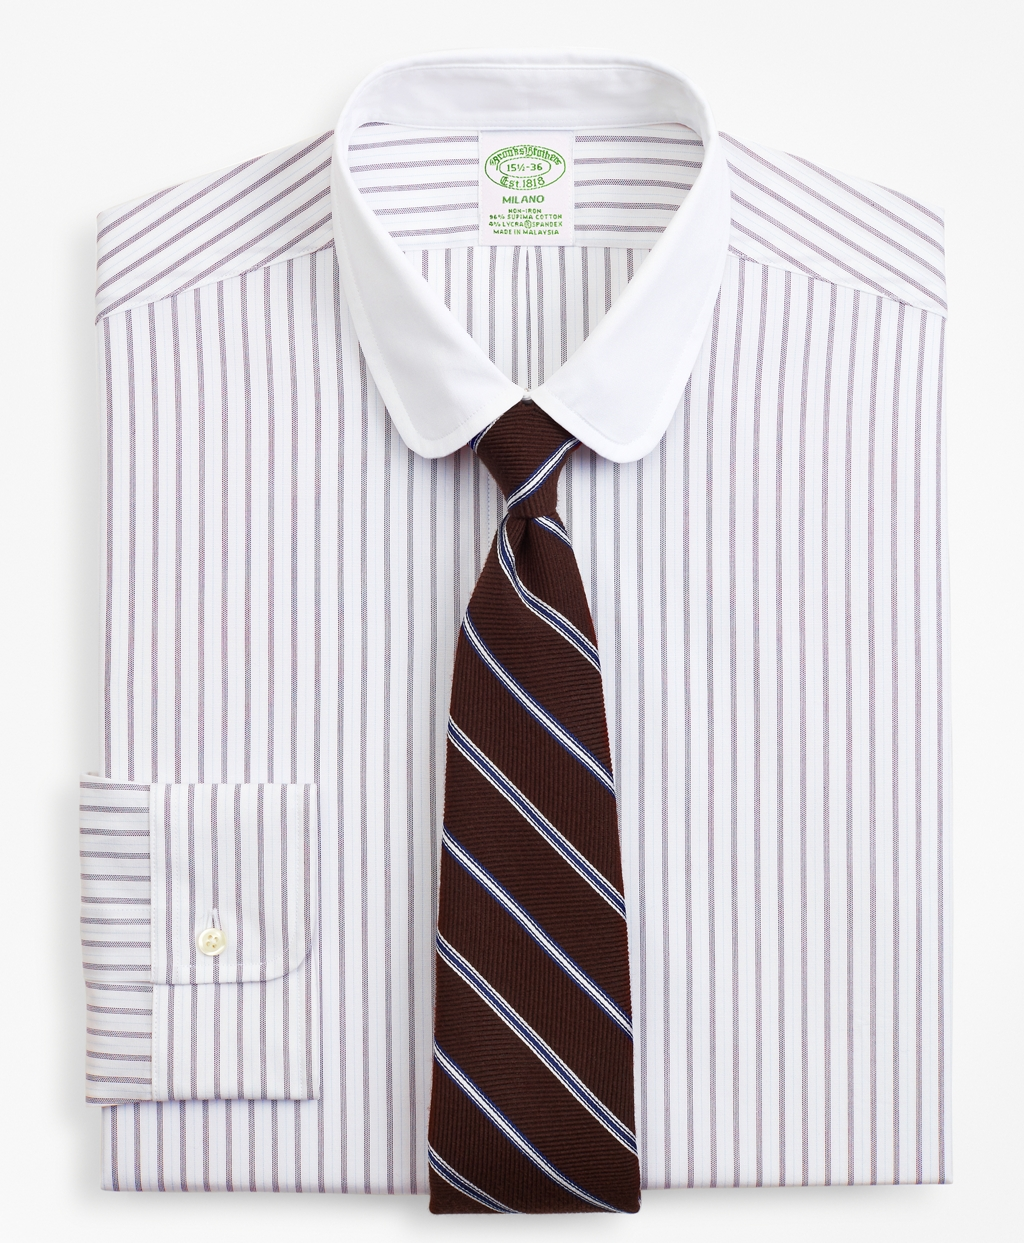 1920s Style Men's Shirts | Peaky Blinders Shirts and Collars Brooks Brothers Mens Stretch Milano Slim-Fit Dress Shirt Dotted-Stripe $98.00 AT vintagedancer.com